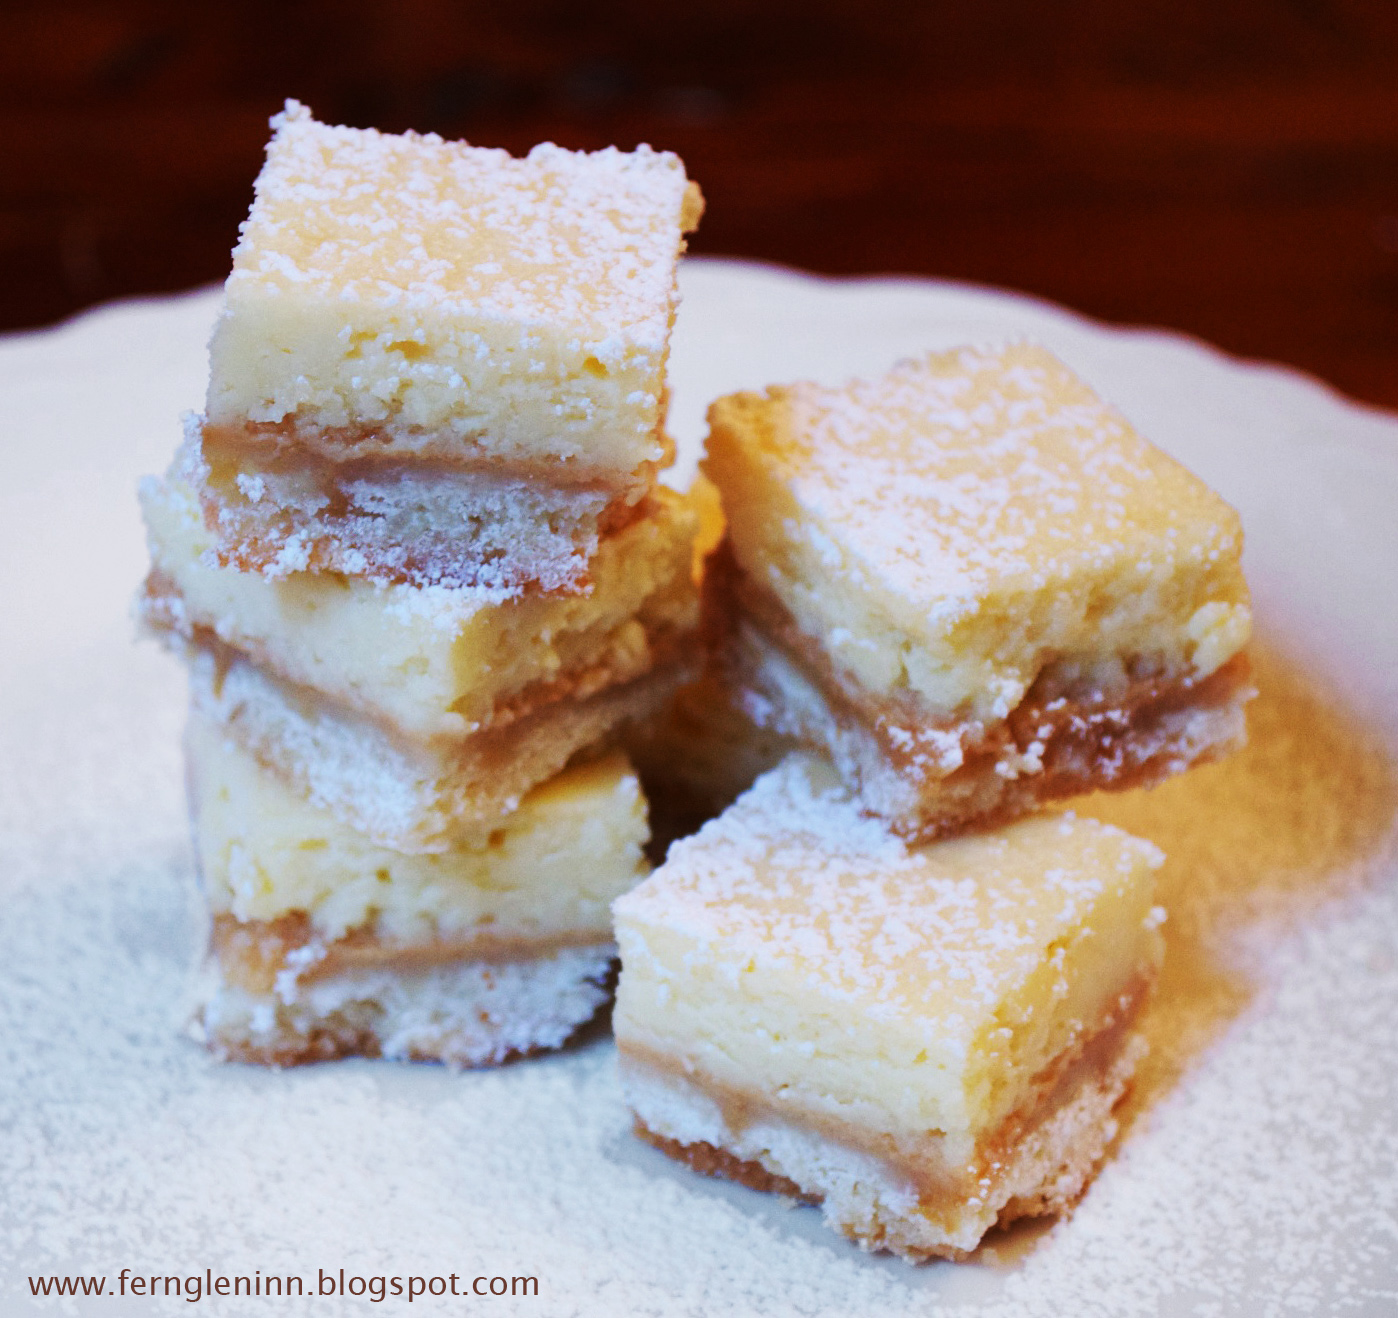 Fern Glen Inn - Seasons and Reasons: Dulce de Leche Cheesecake Squares